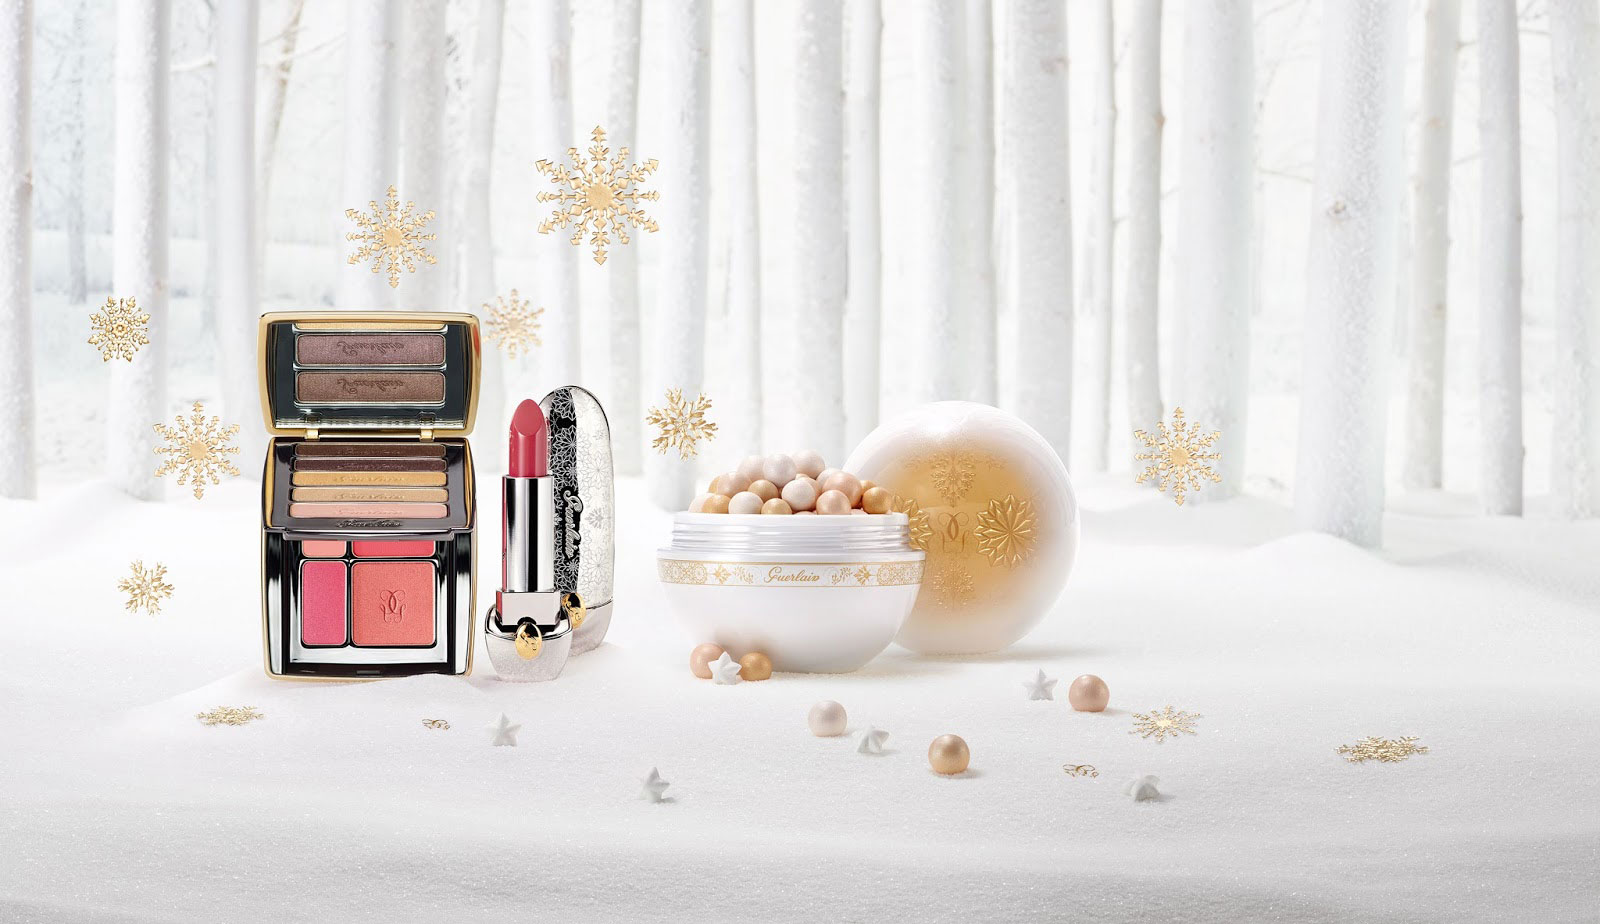 Guerlain-Neiges-et-Merveilles-Holiday-Collection-2015-Visual